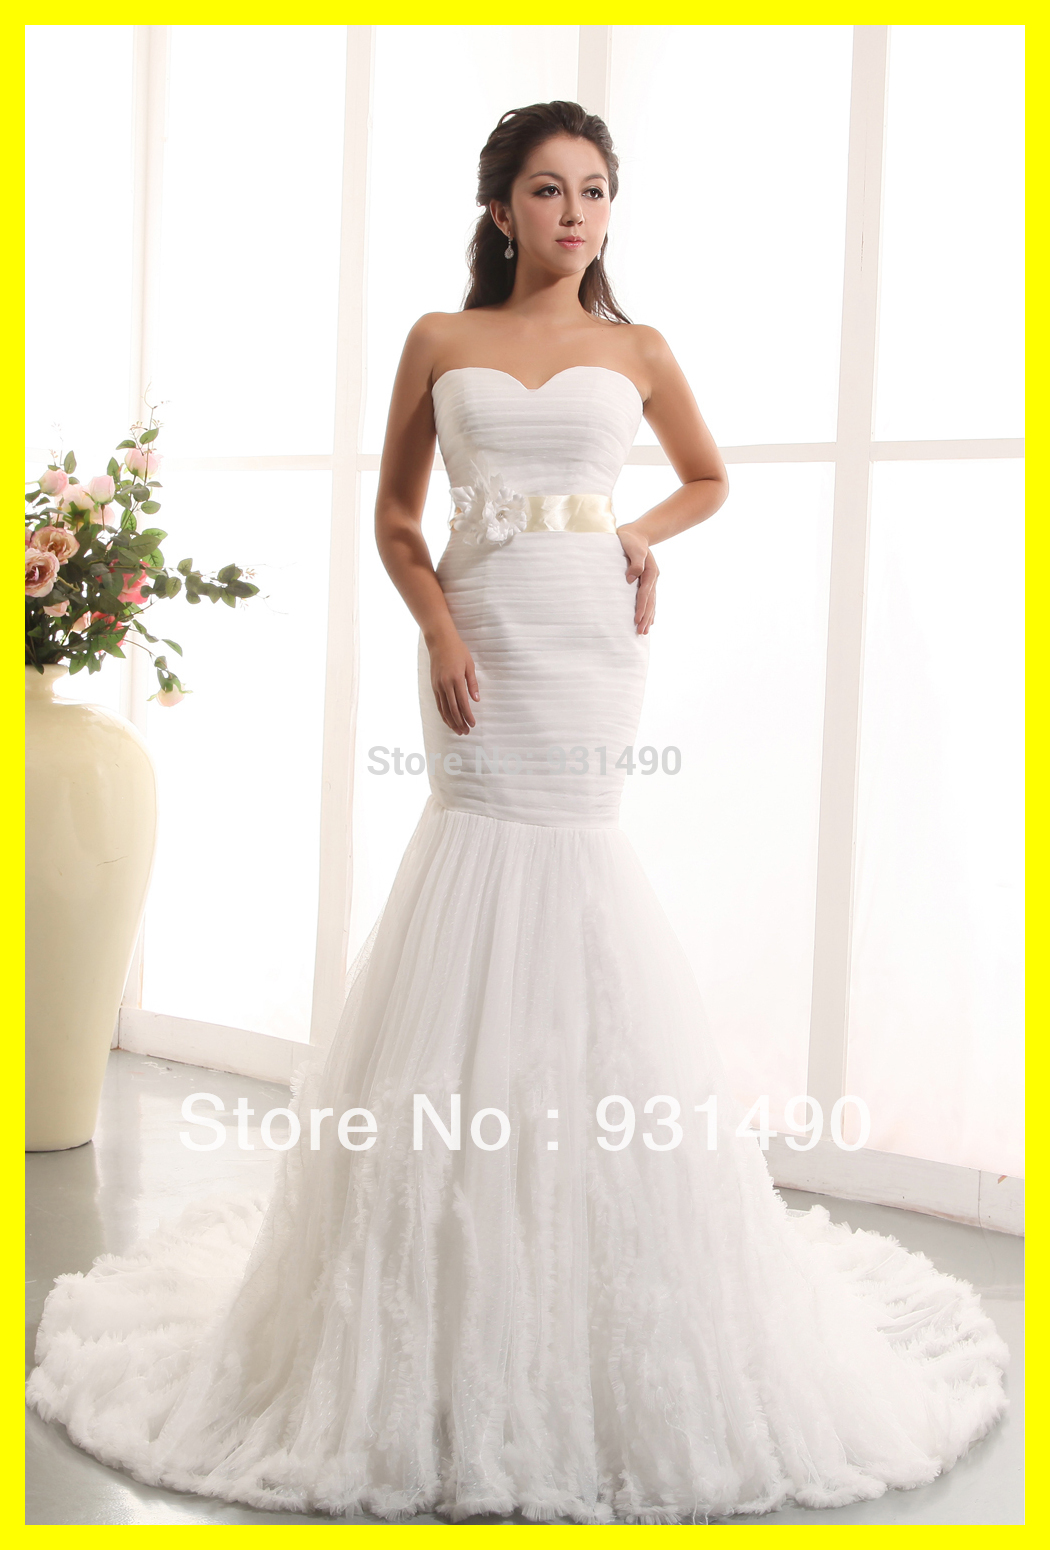 White Gypsy Wedding Dress For Sale 18